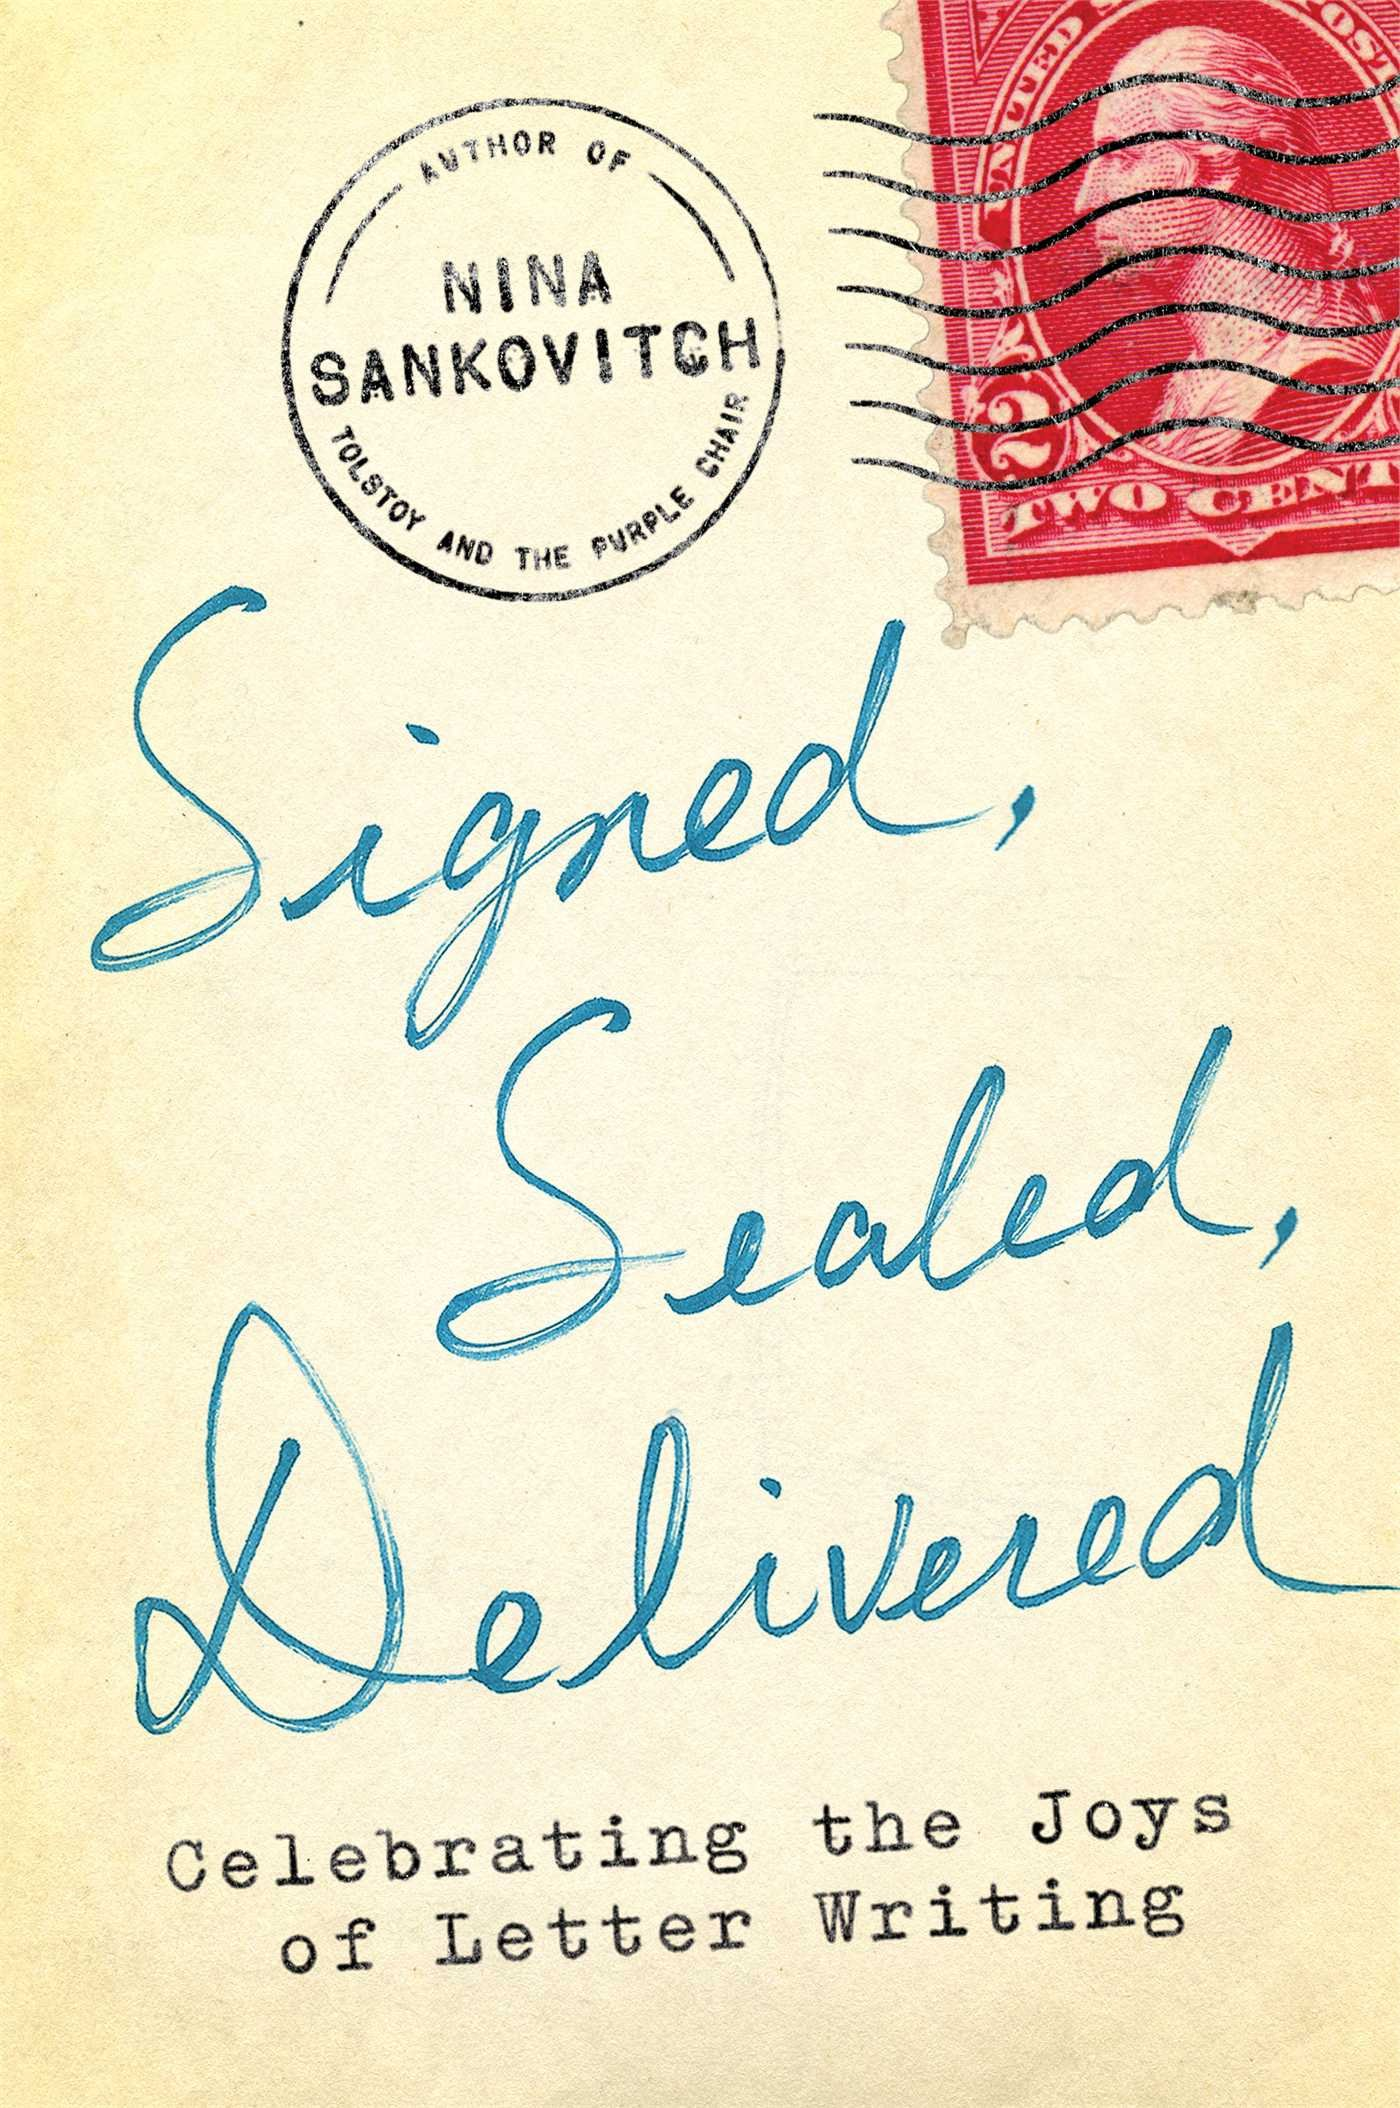 Signed sealed delivered celebrating the joys of letter writing signed sealed delivered celebrating the joys of letter writing nina sankovitch 9781451687156 amazon books spiritdancerdesigns Choice Image